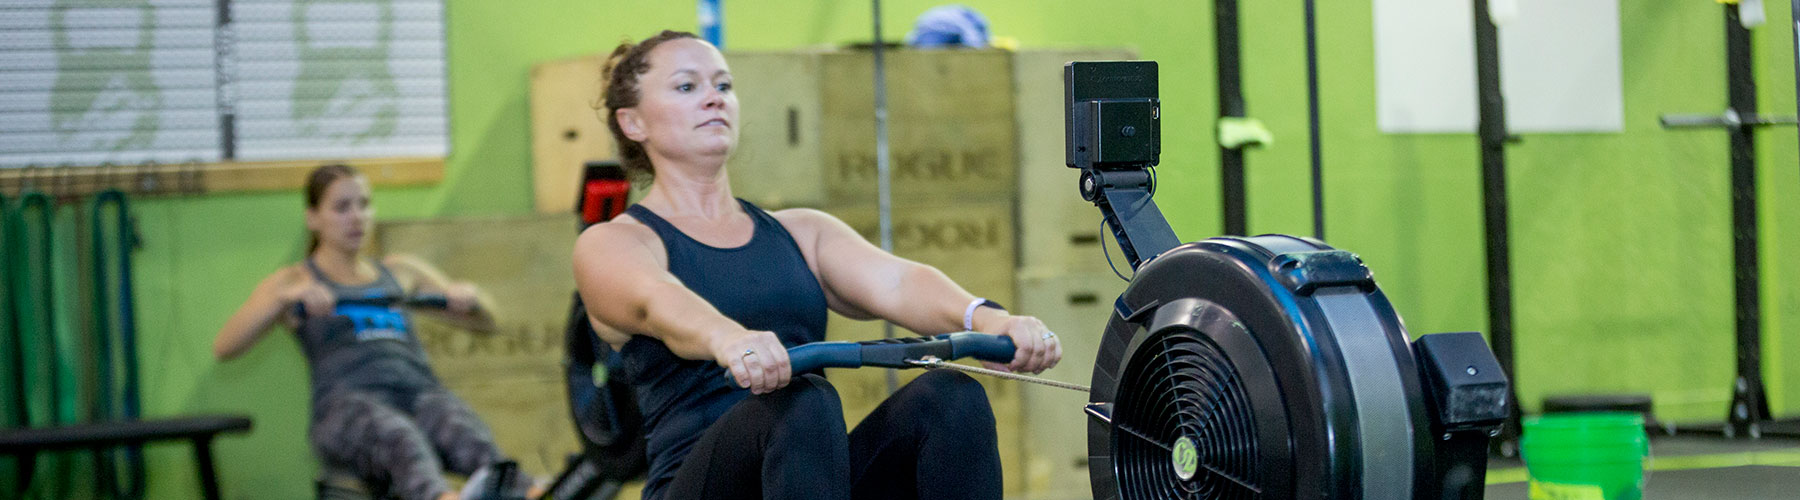 Woman rowing at CrossFit Iron Refined in Eagle River Alaska.